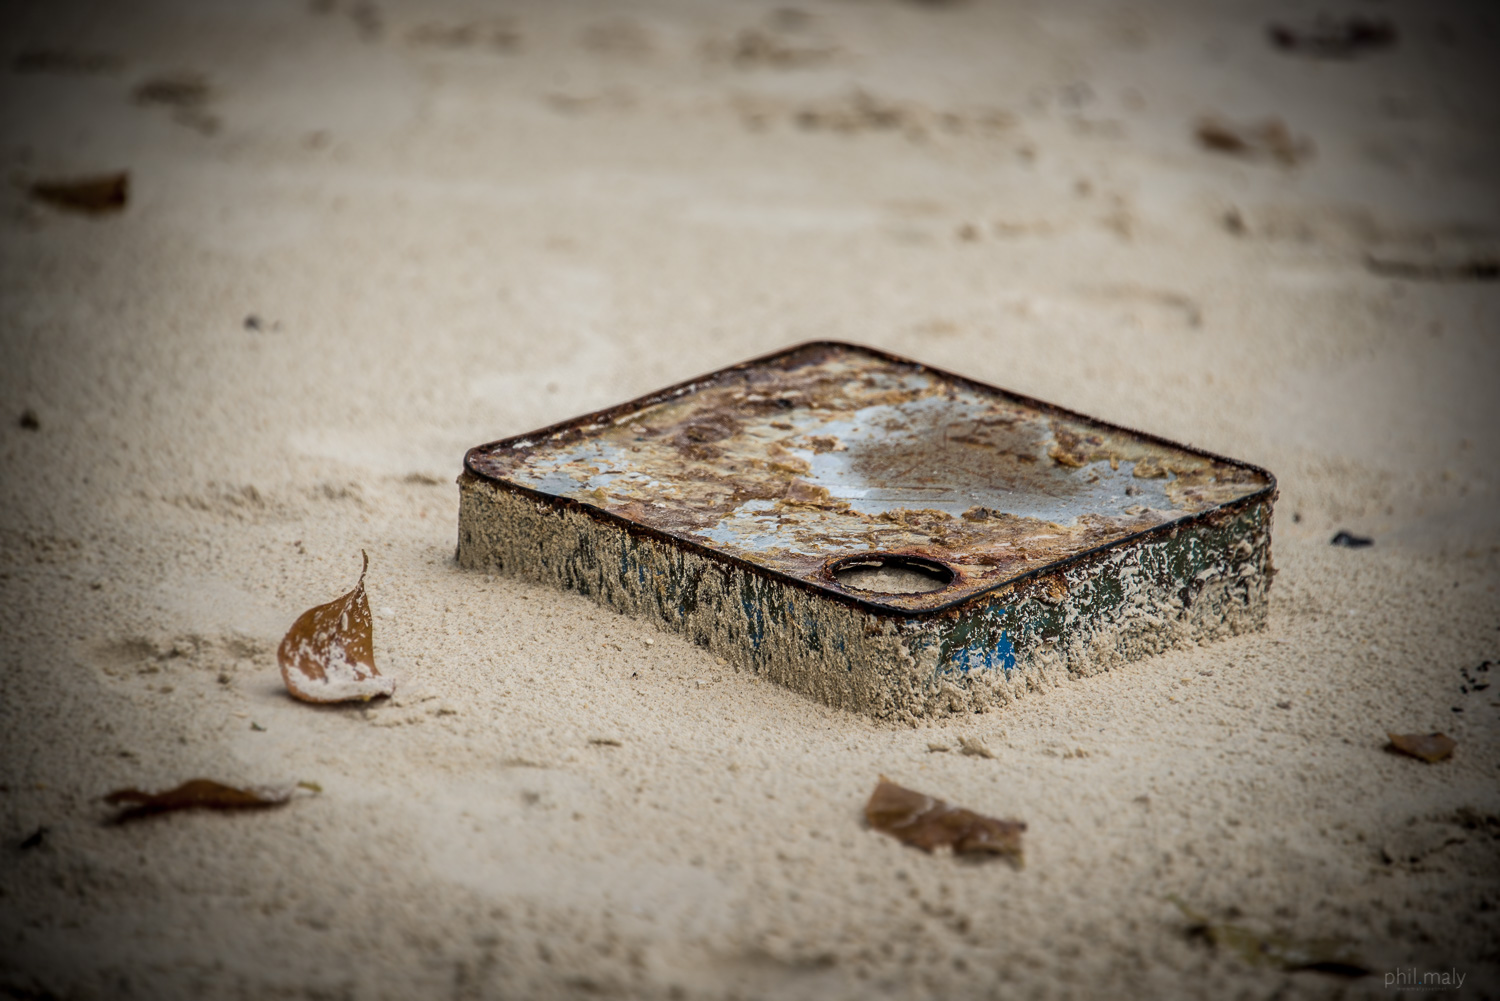 Detail of a metallic can dug in the sand of a beach